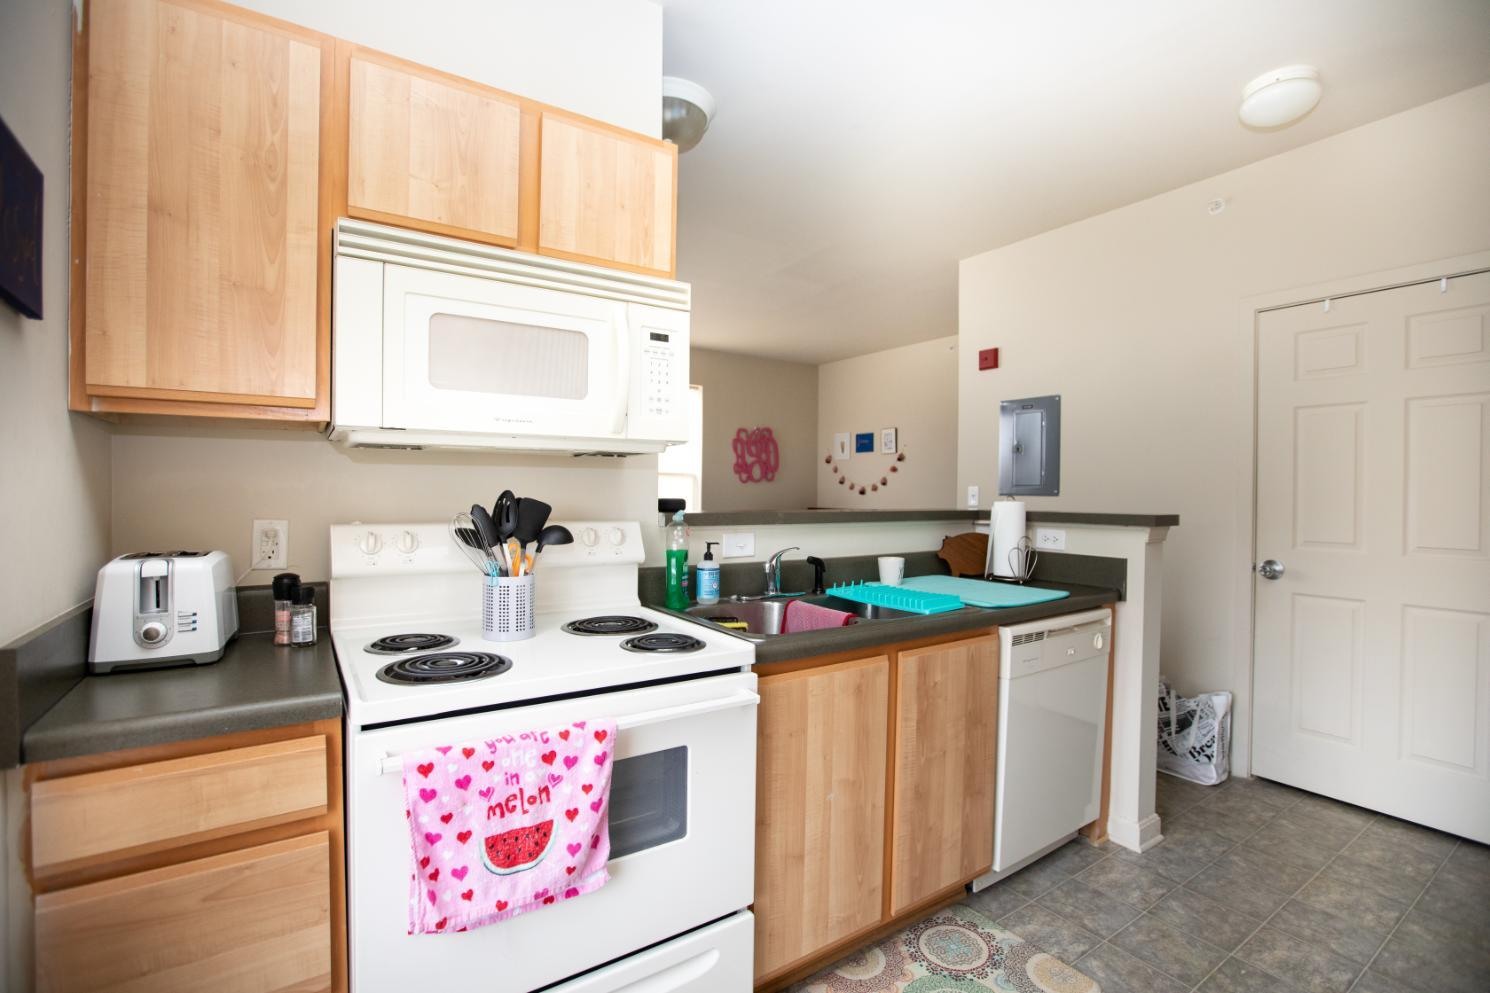 Longwood Landings Studio Apartment; view of stove and microwave and counter looking into the living area